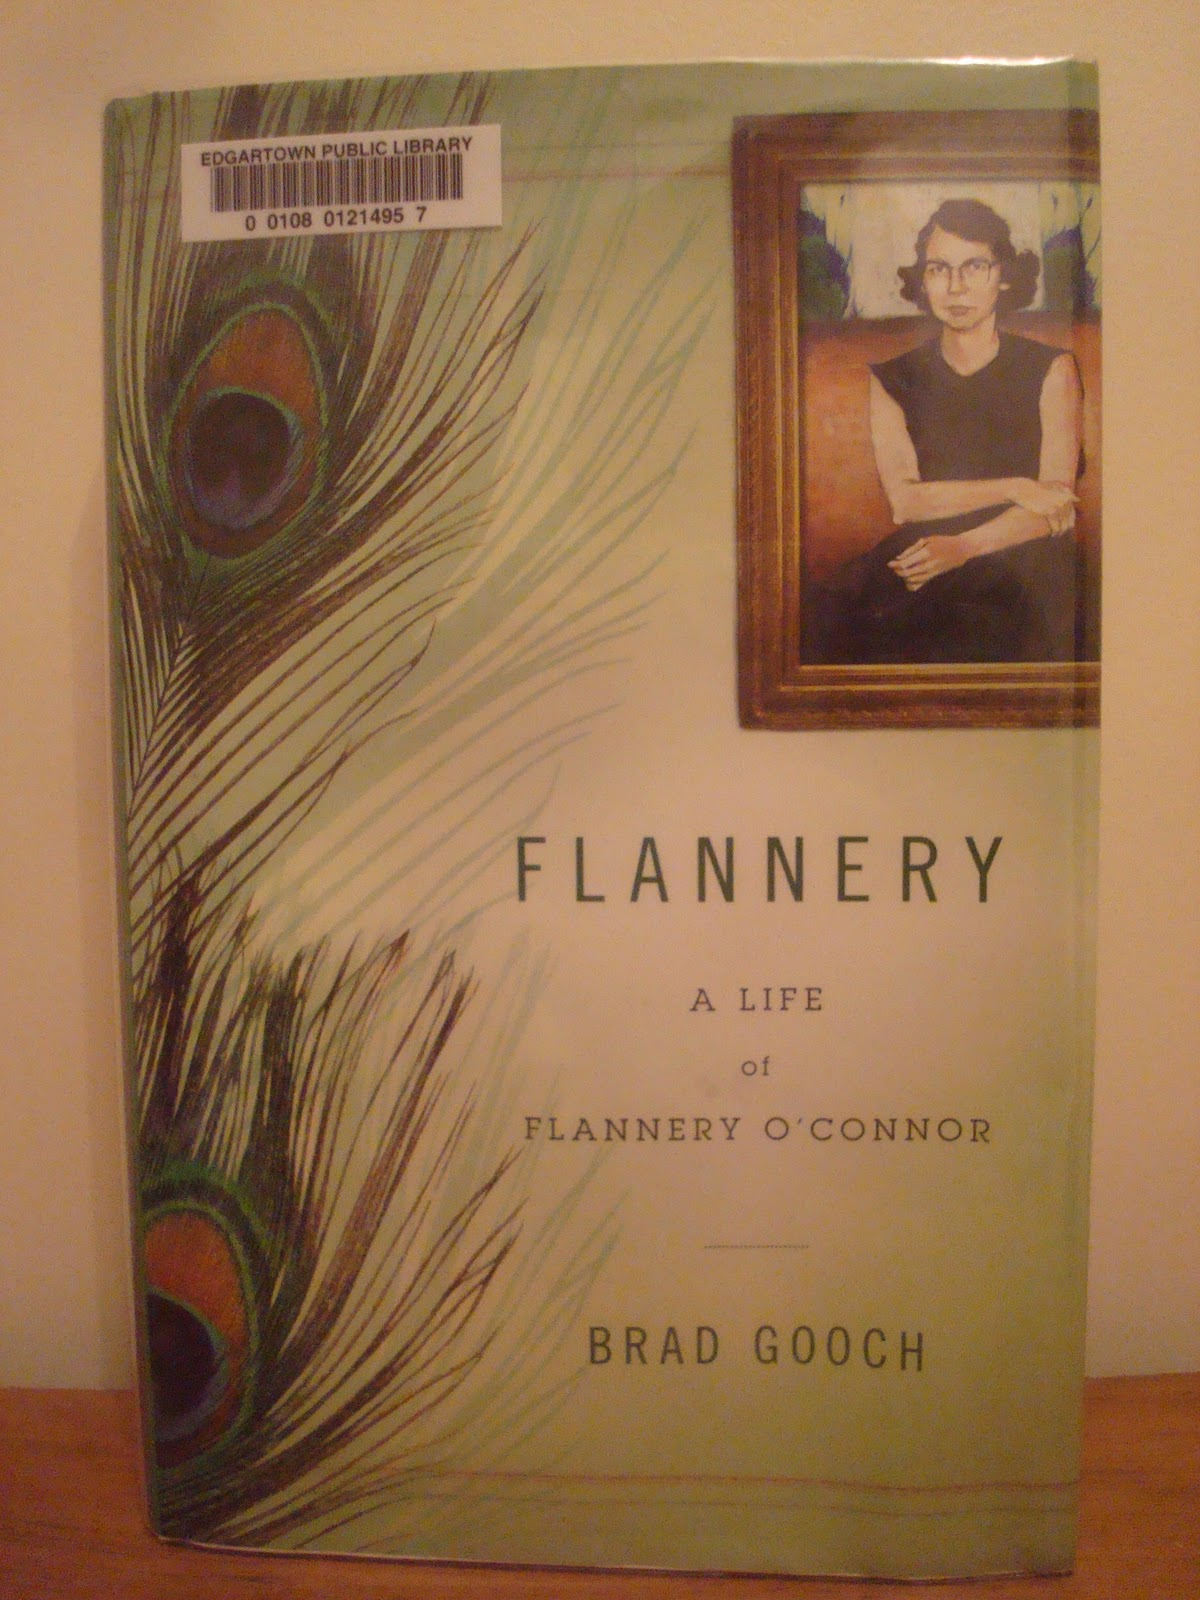 revelation by flannery oconnor essay